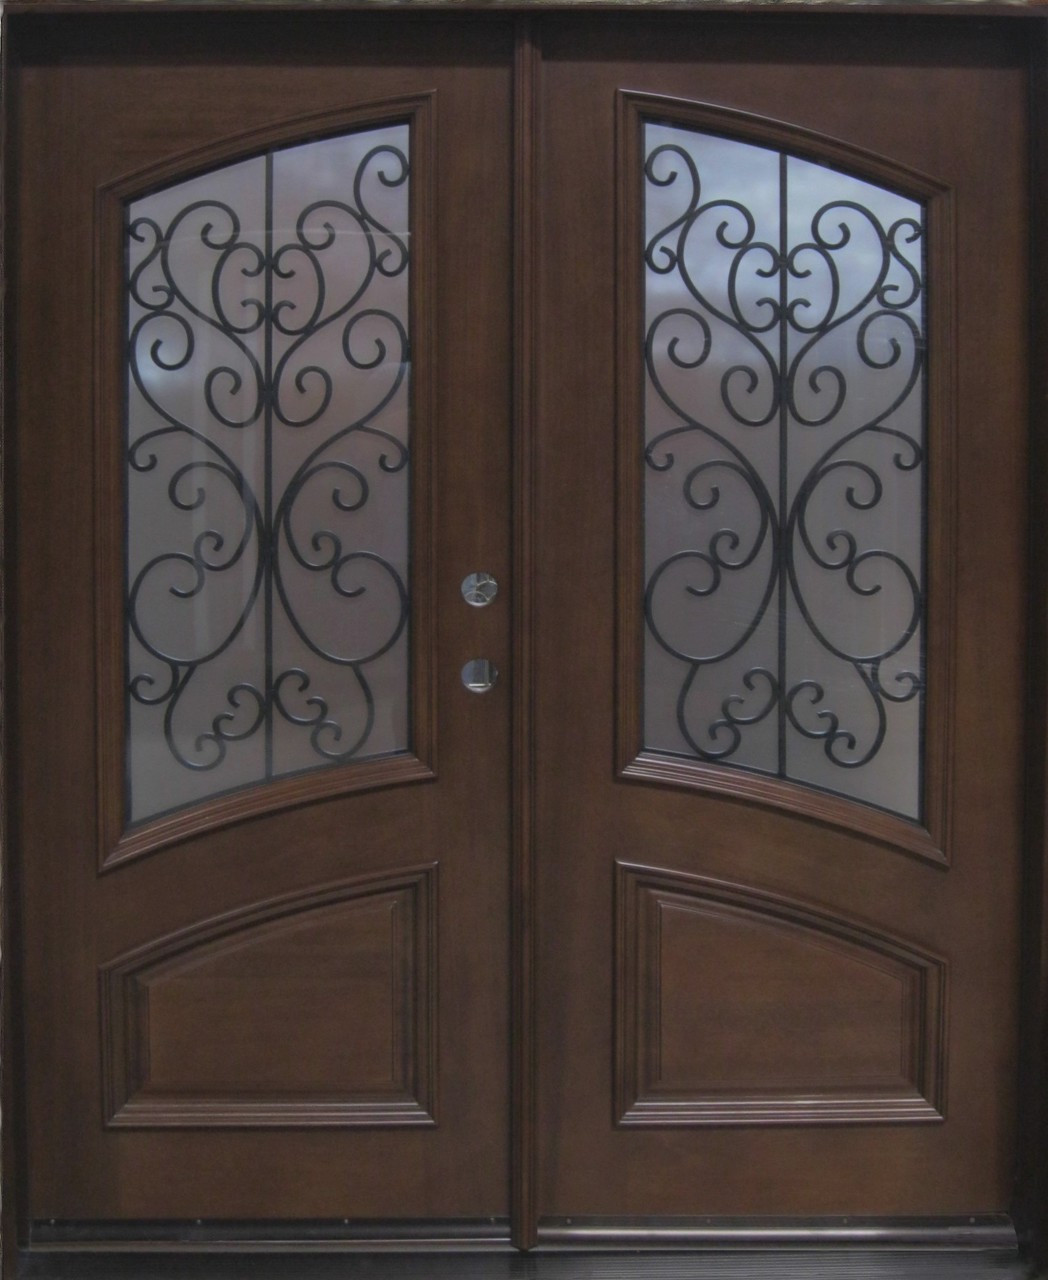 Discount Door Center Prehung and Prefinished 3/4 Deluxe Oval Entry on